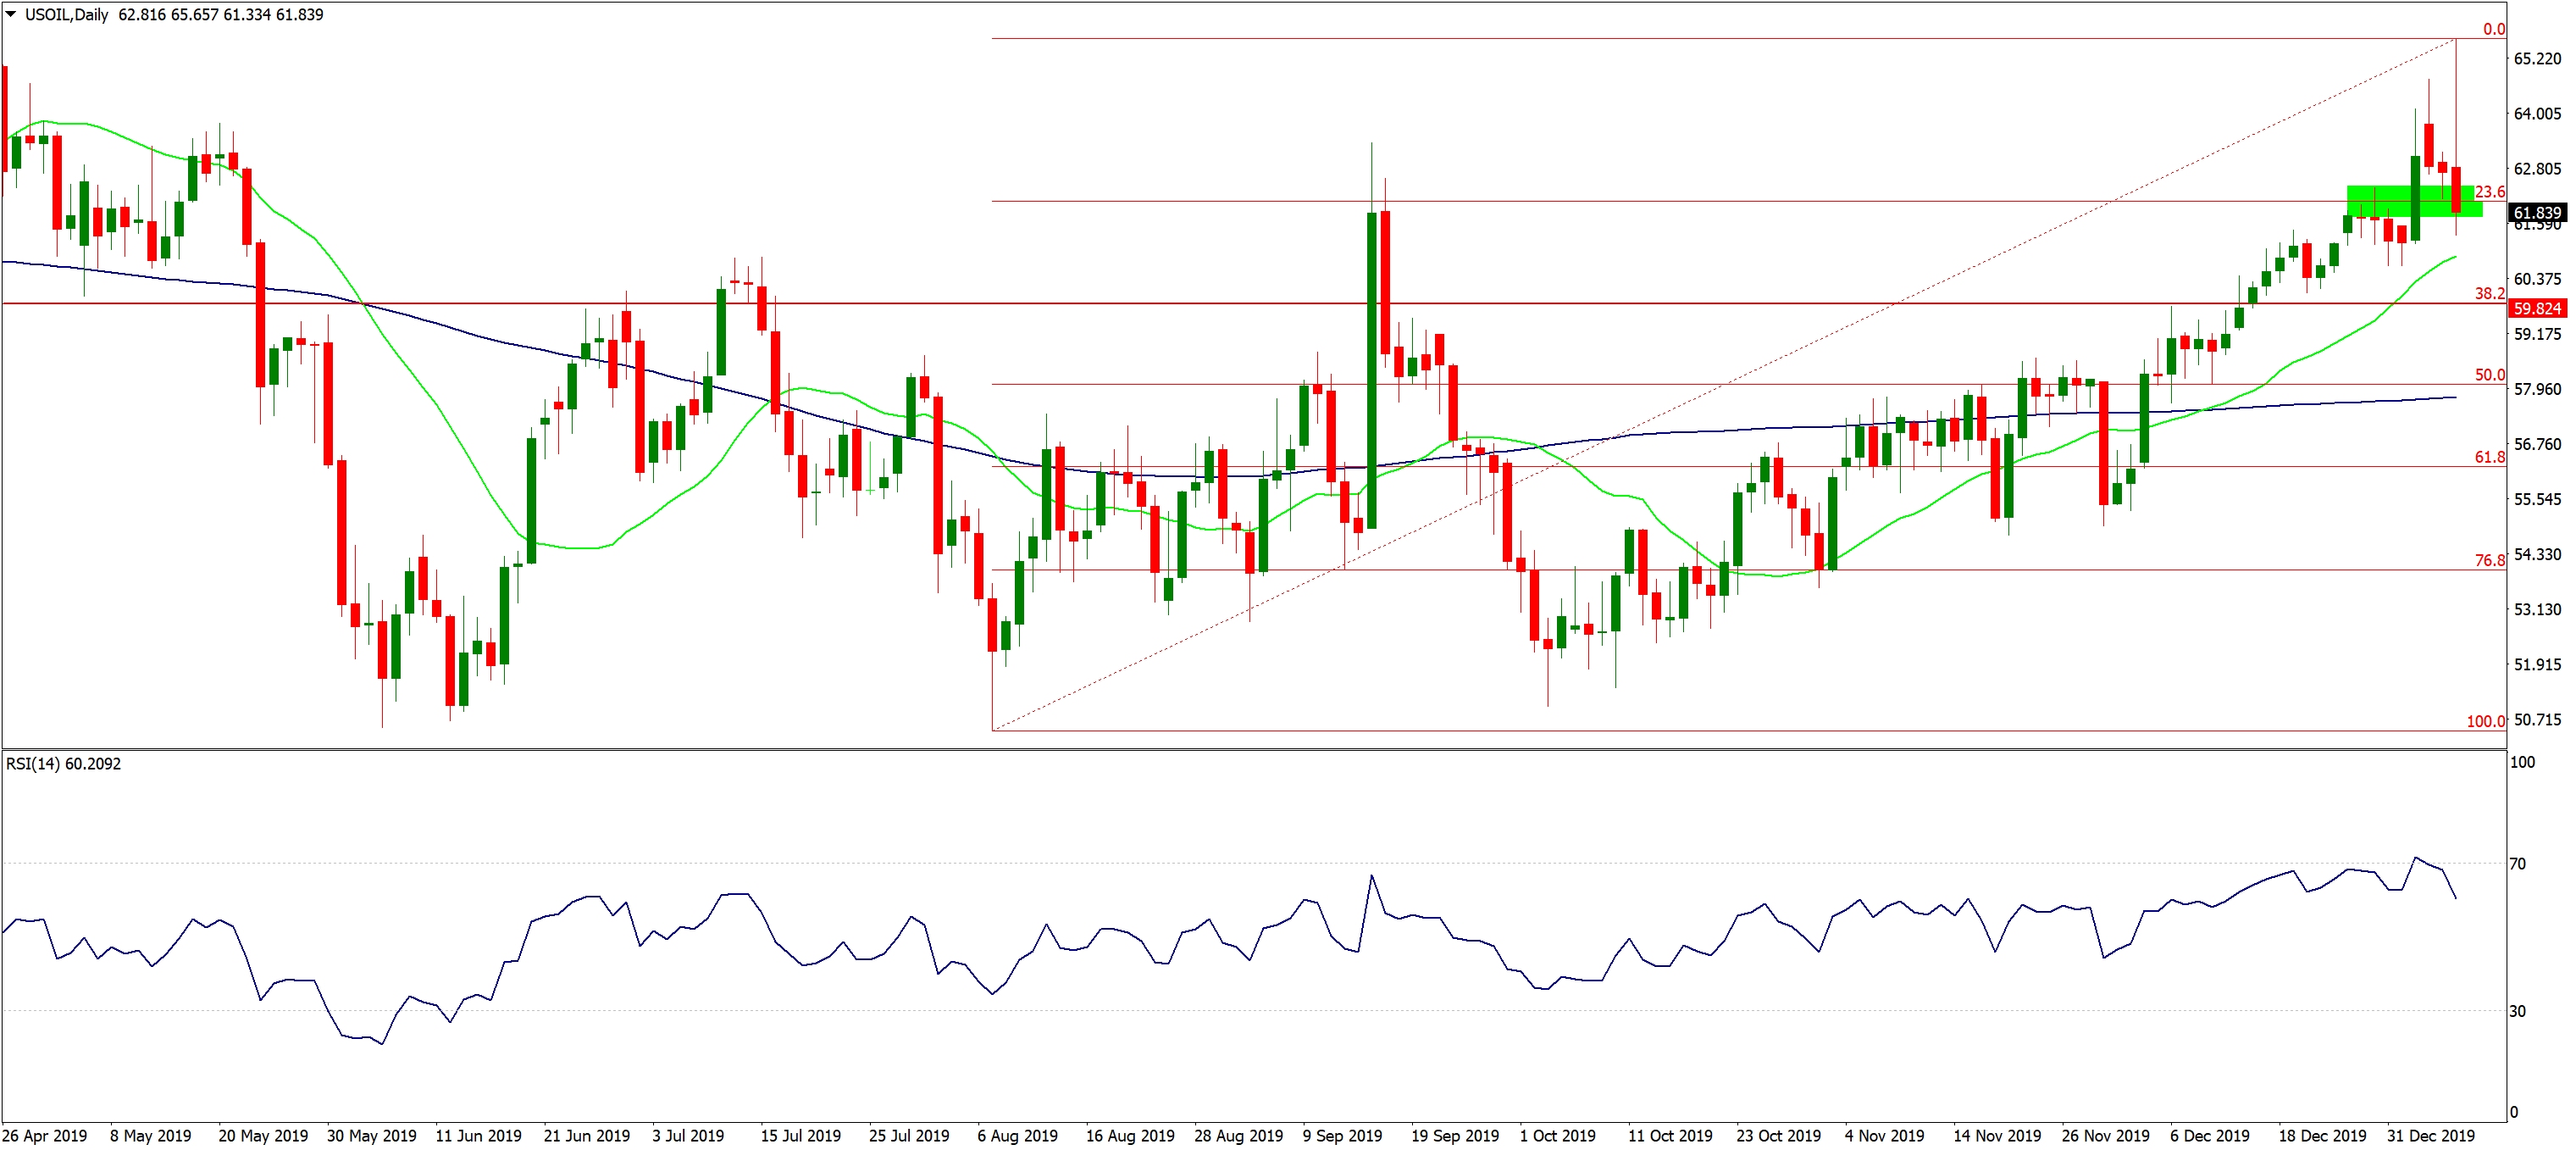 USOIL Daily, Source: AxiTrader